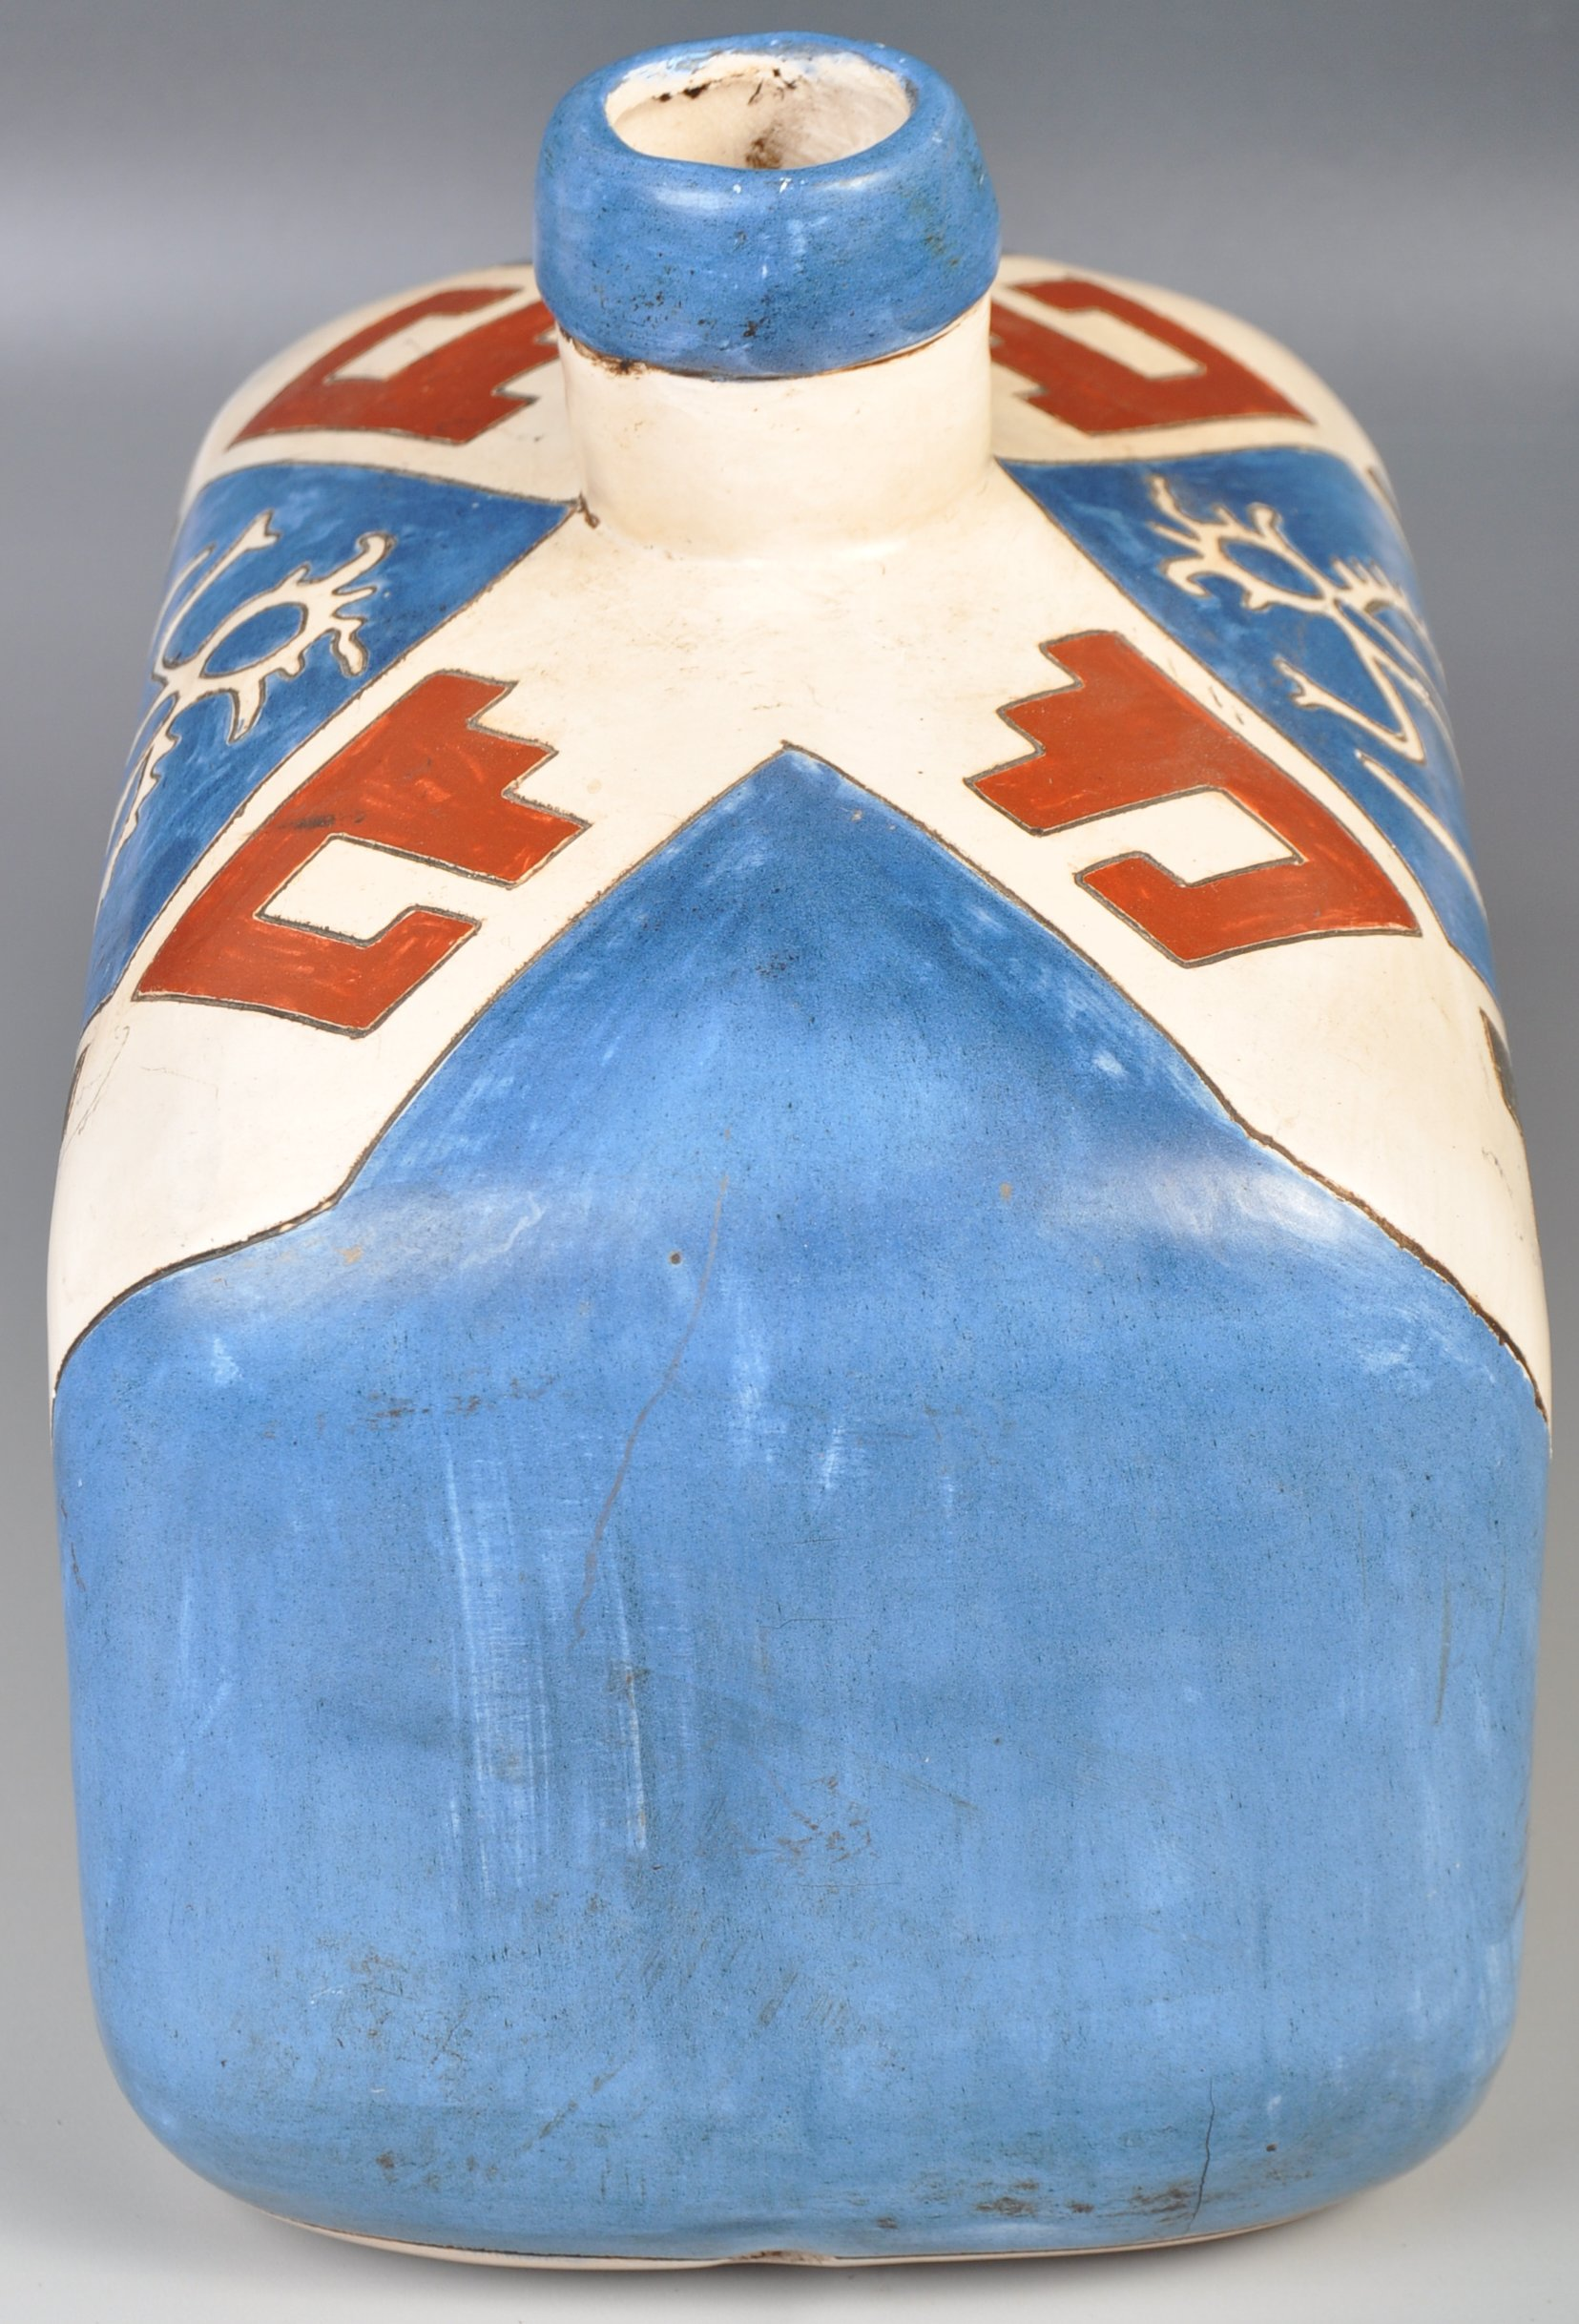 Lot 53 - UNUSUAL MID CENTURY RETRO HAND PAINTED POTTERY VASE / LAMP BASE